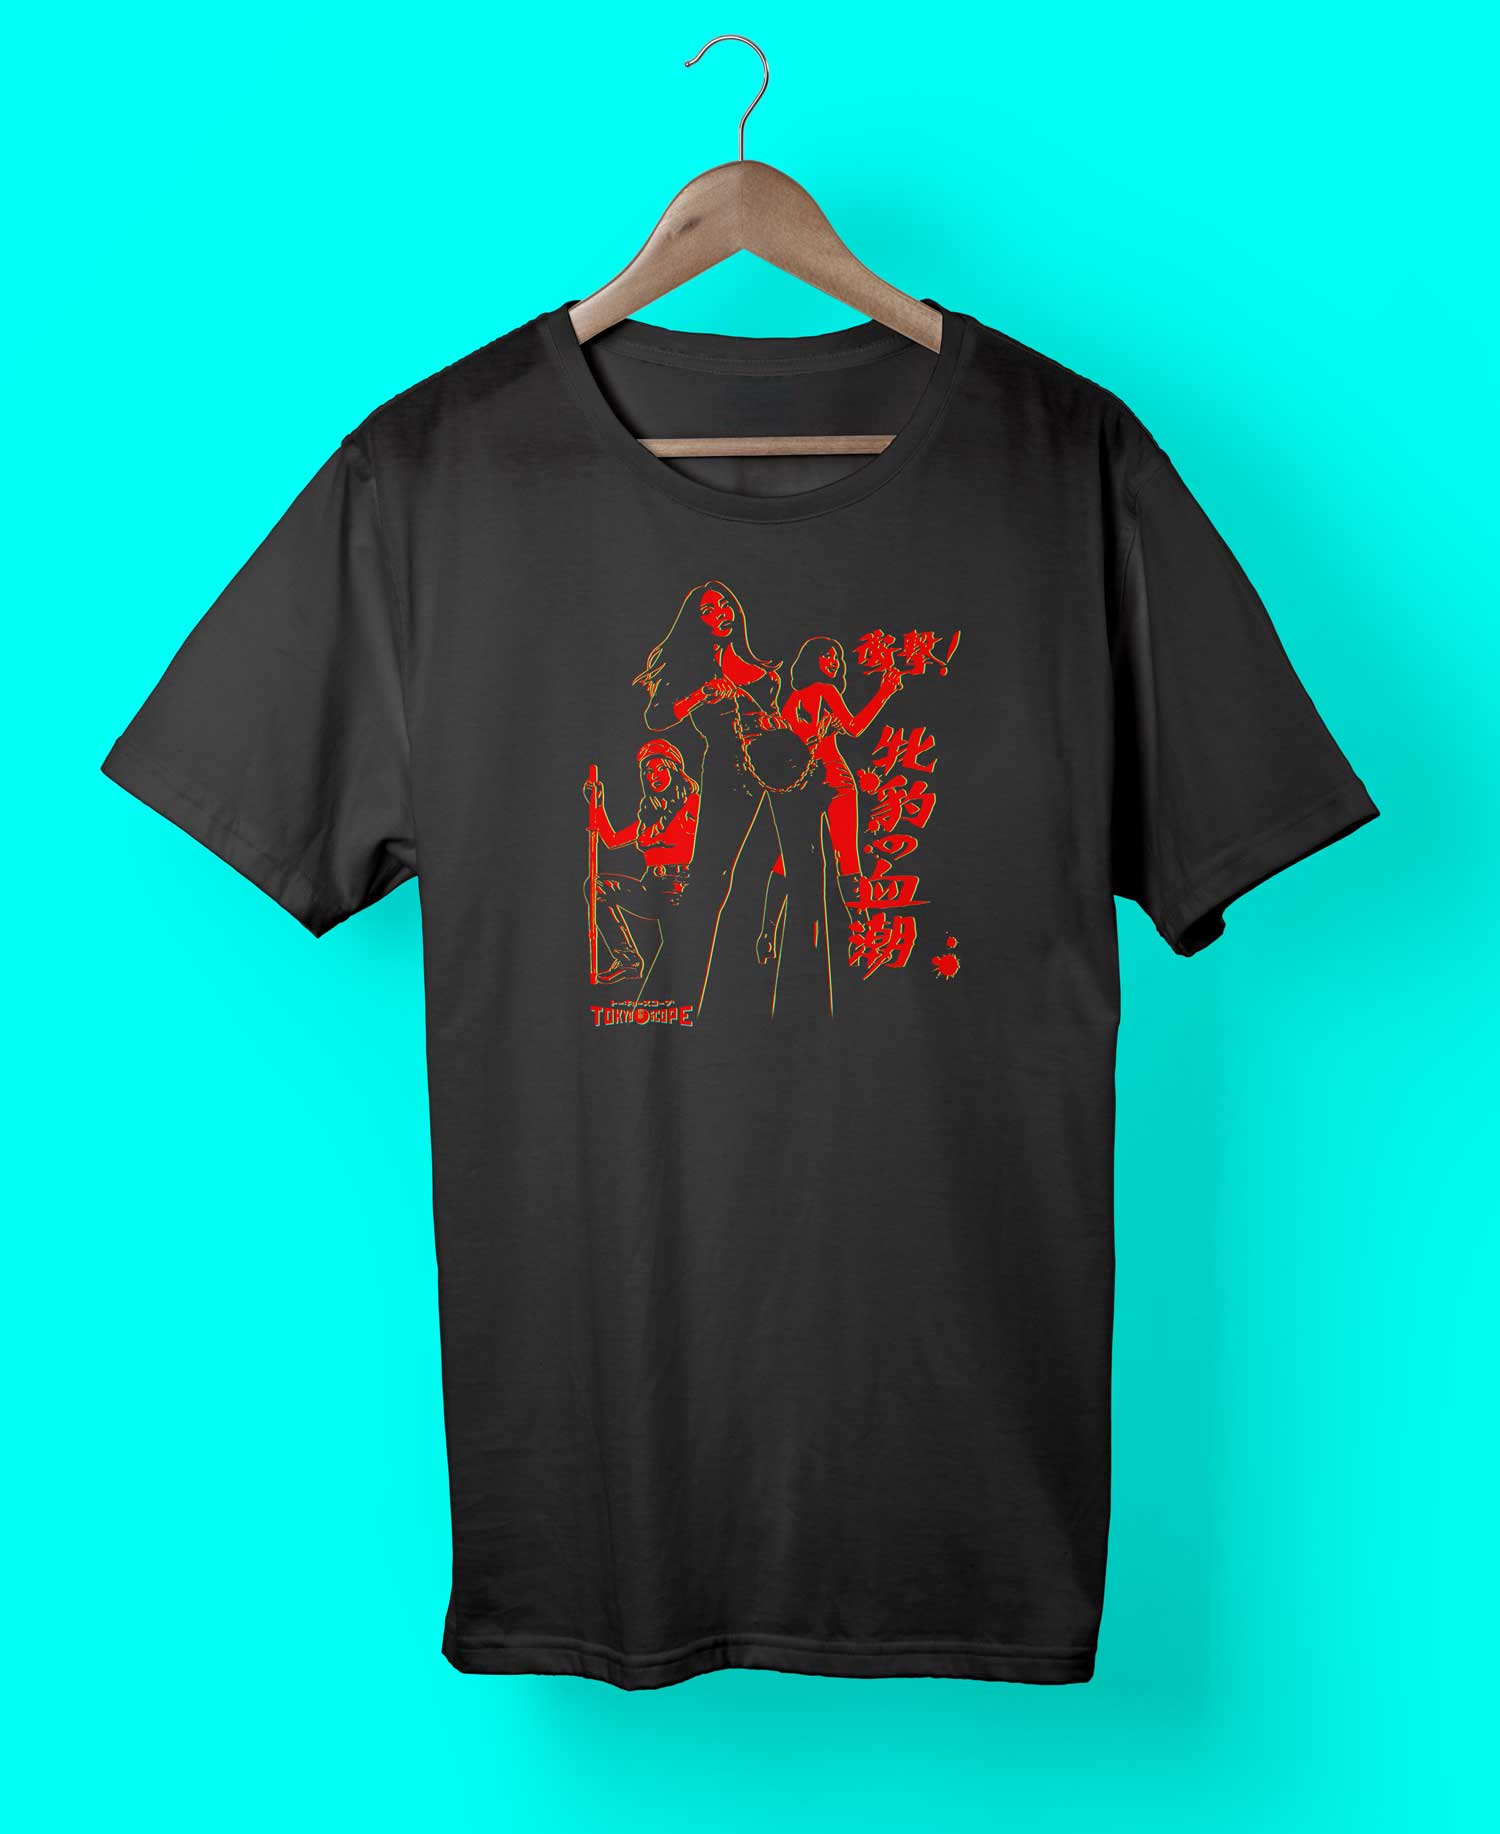 "YANKII STYLE ""Pinky Violence"" Unisex T-shirt by Haruki Ara (Red on Black)"